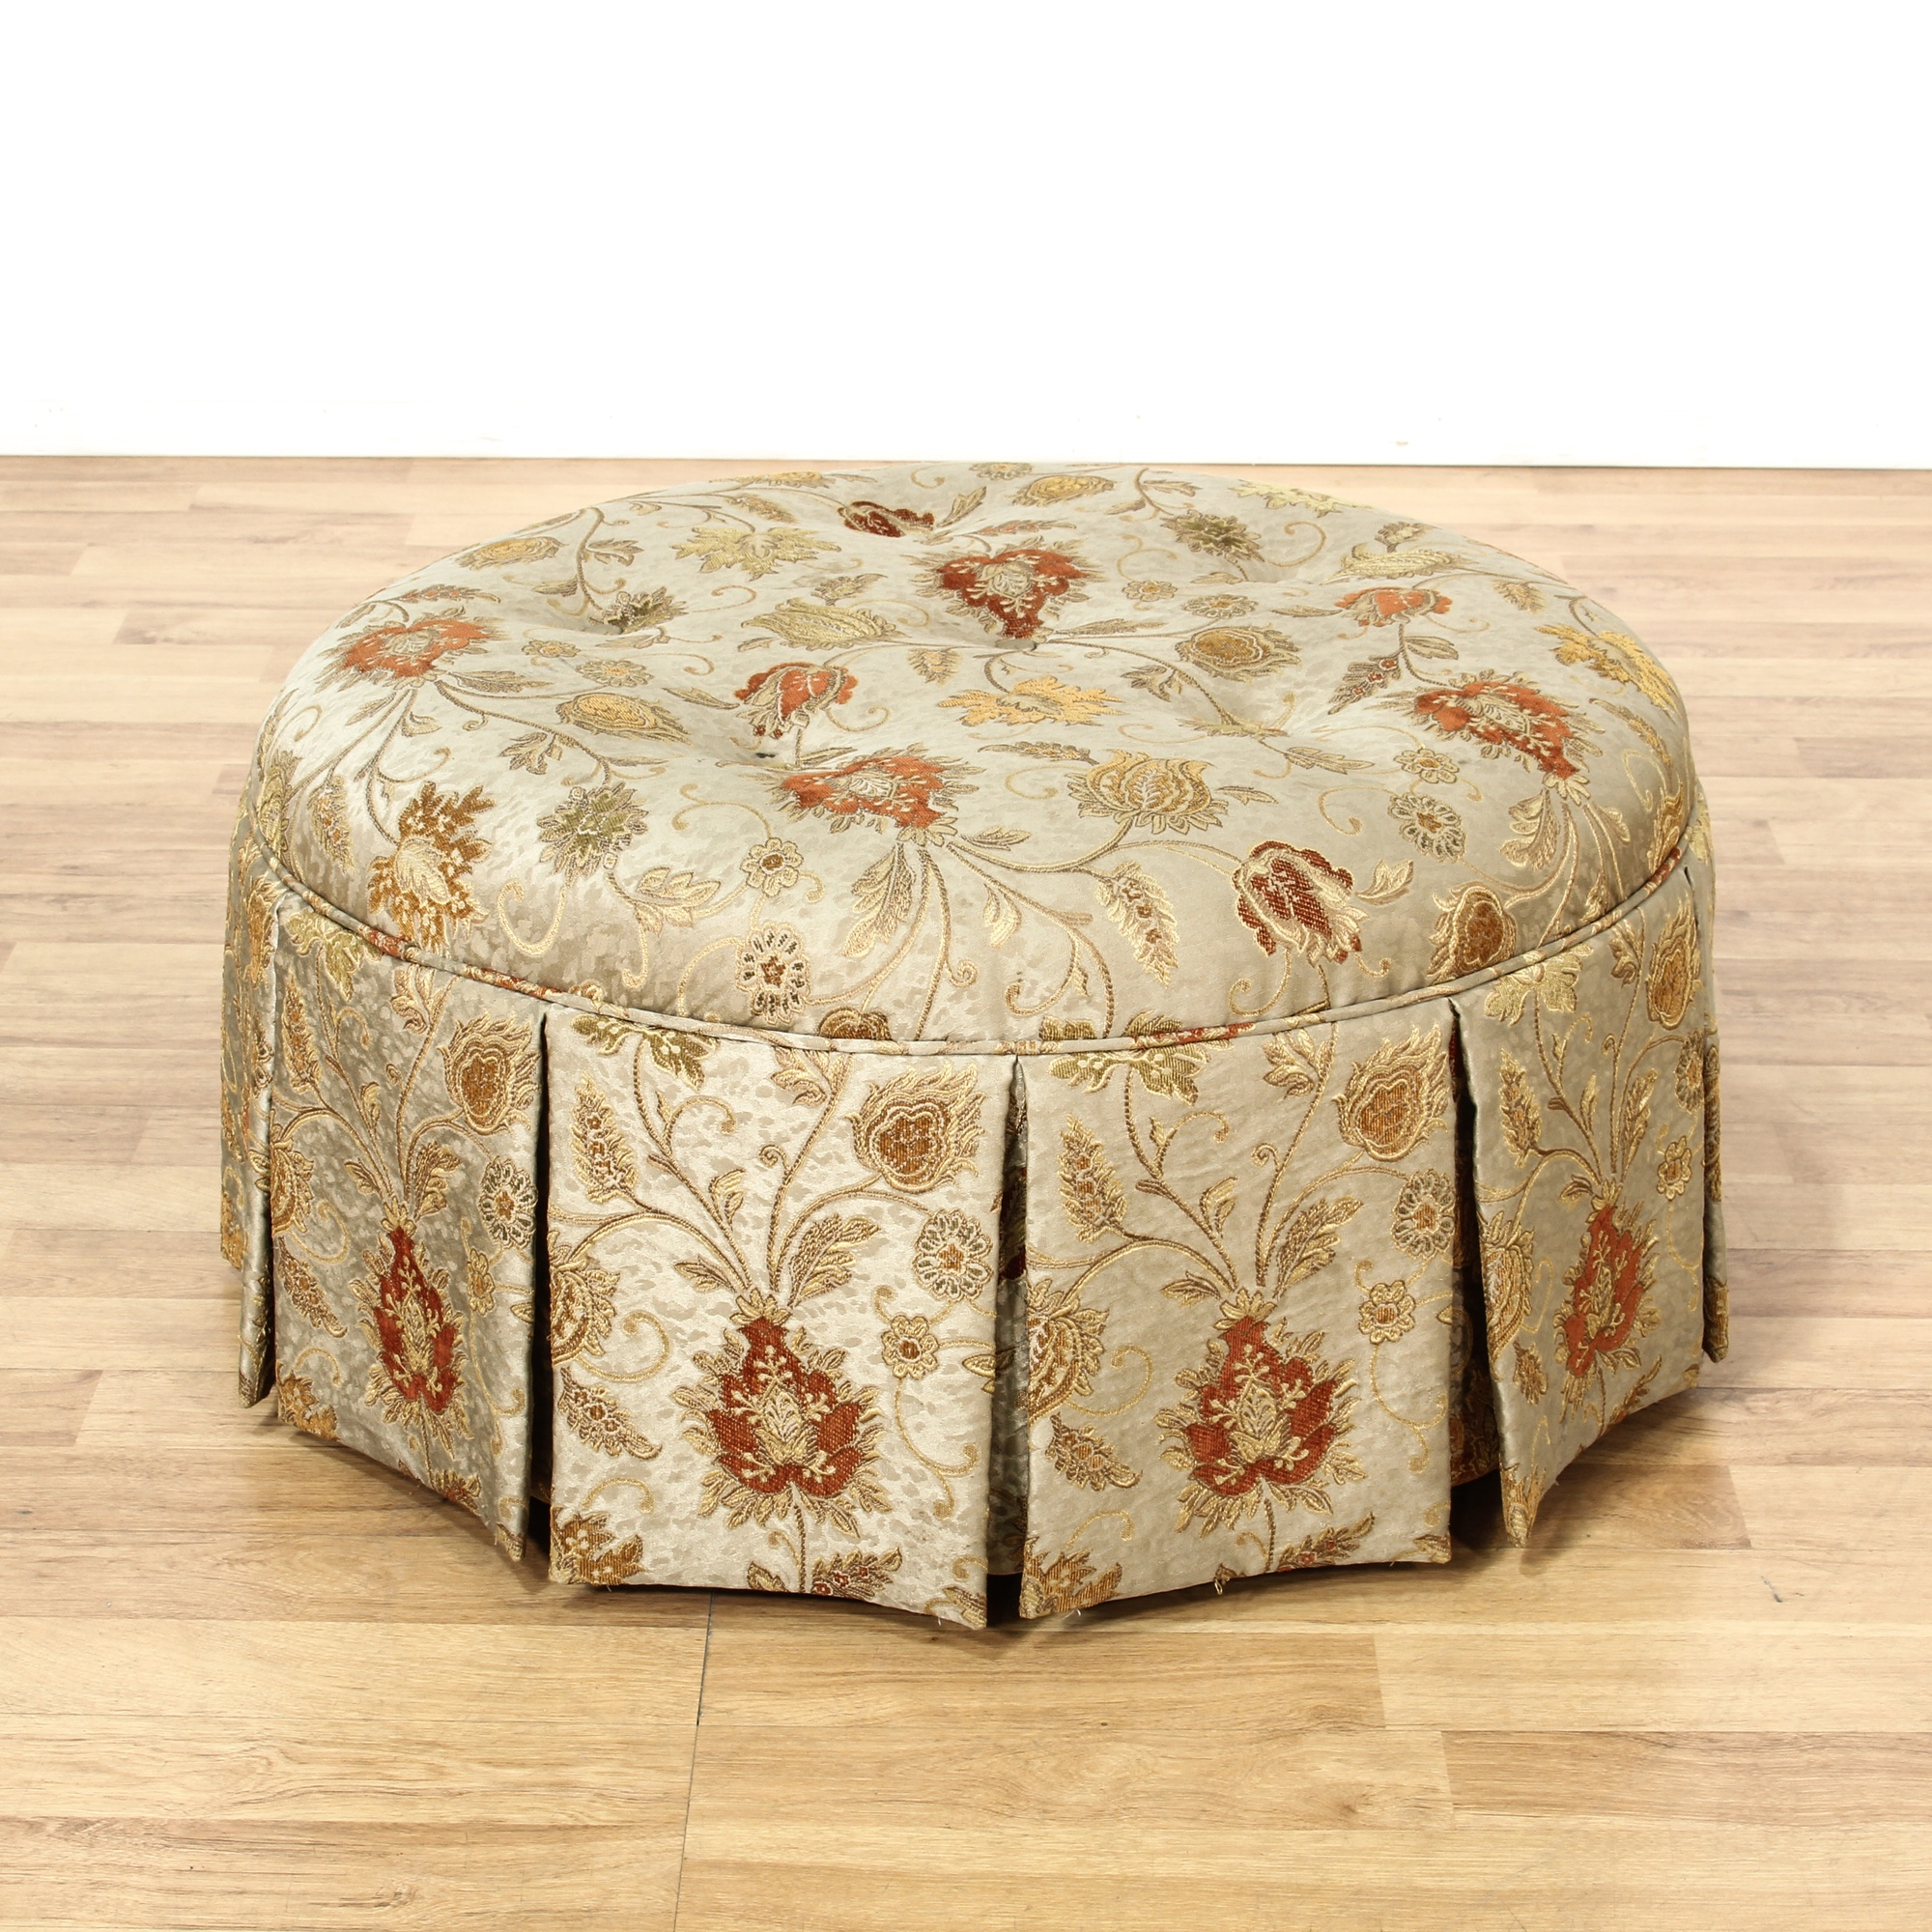 Large Round Upholstered Ottoman